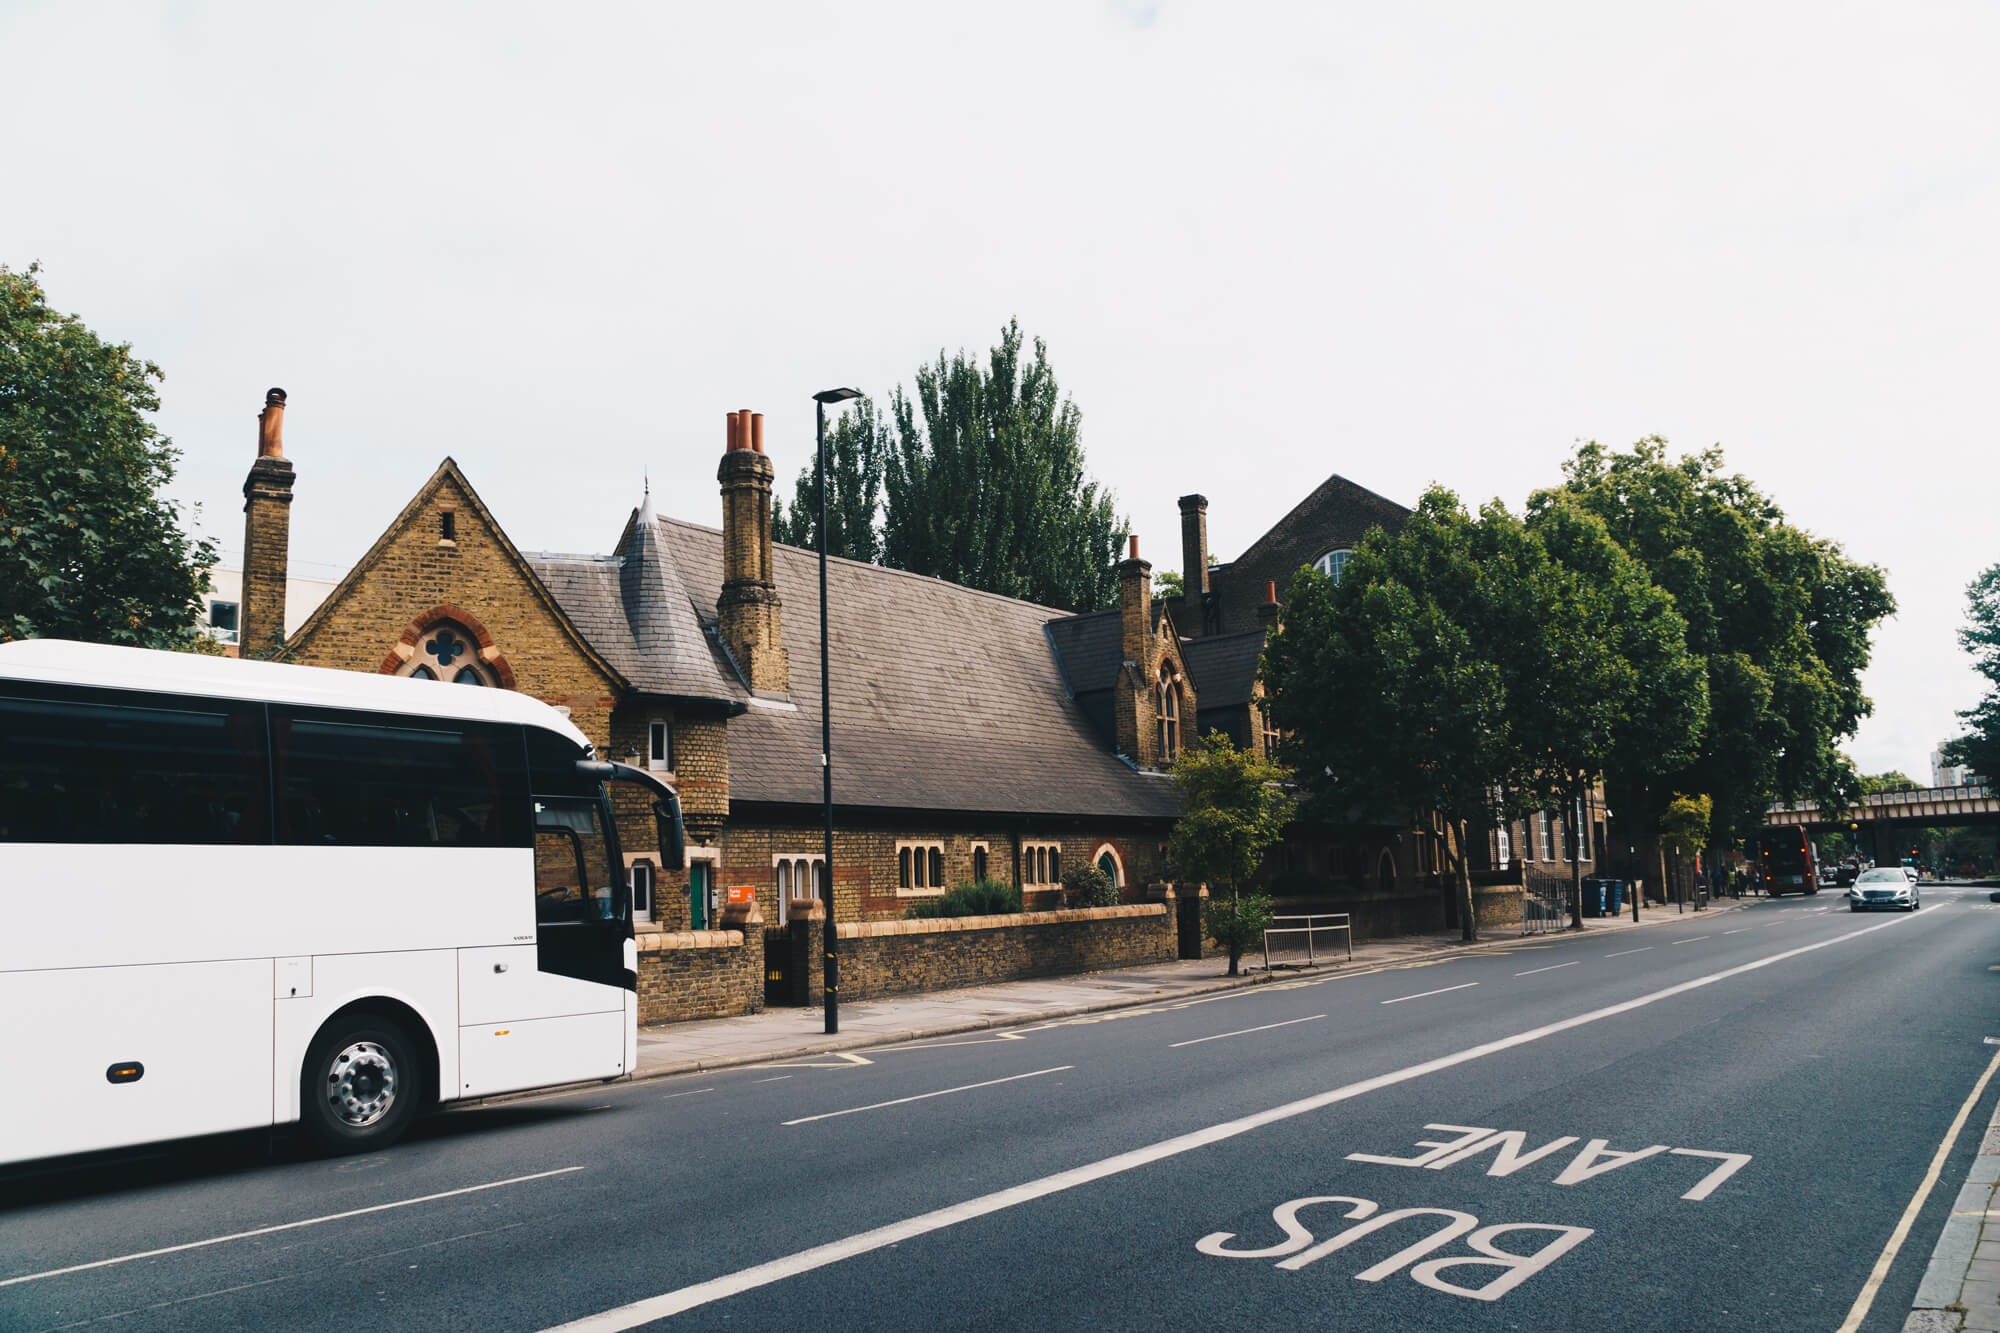 Coach Hire trips to the countryside